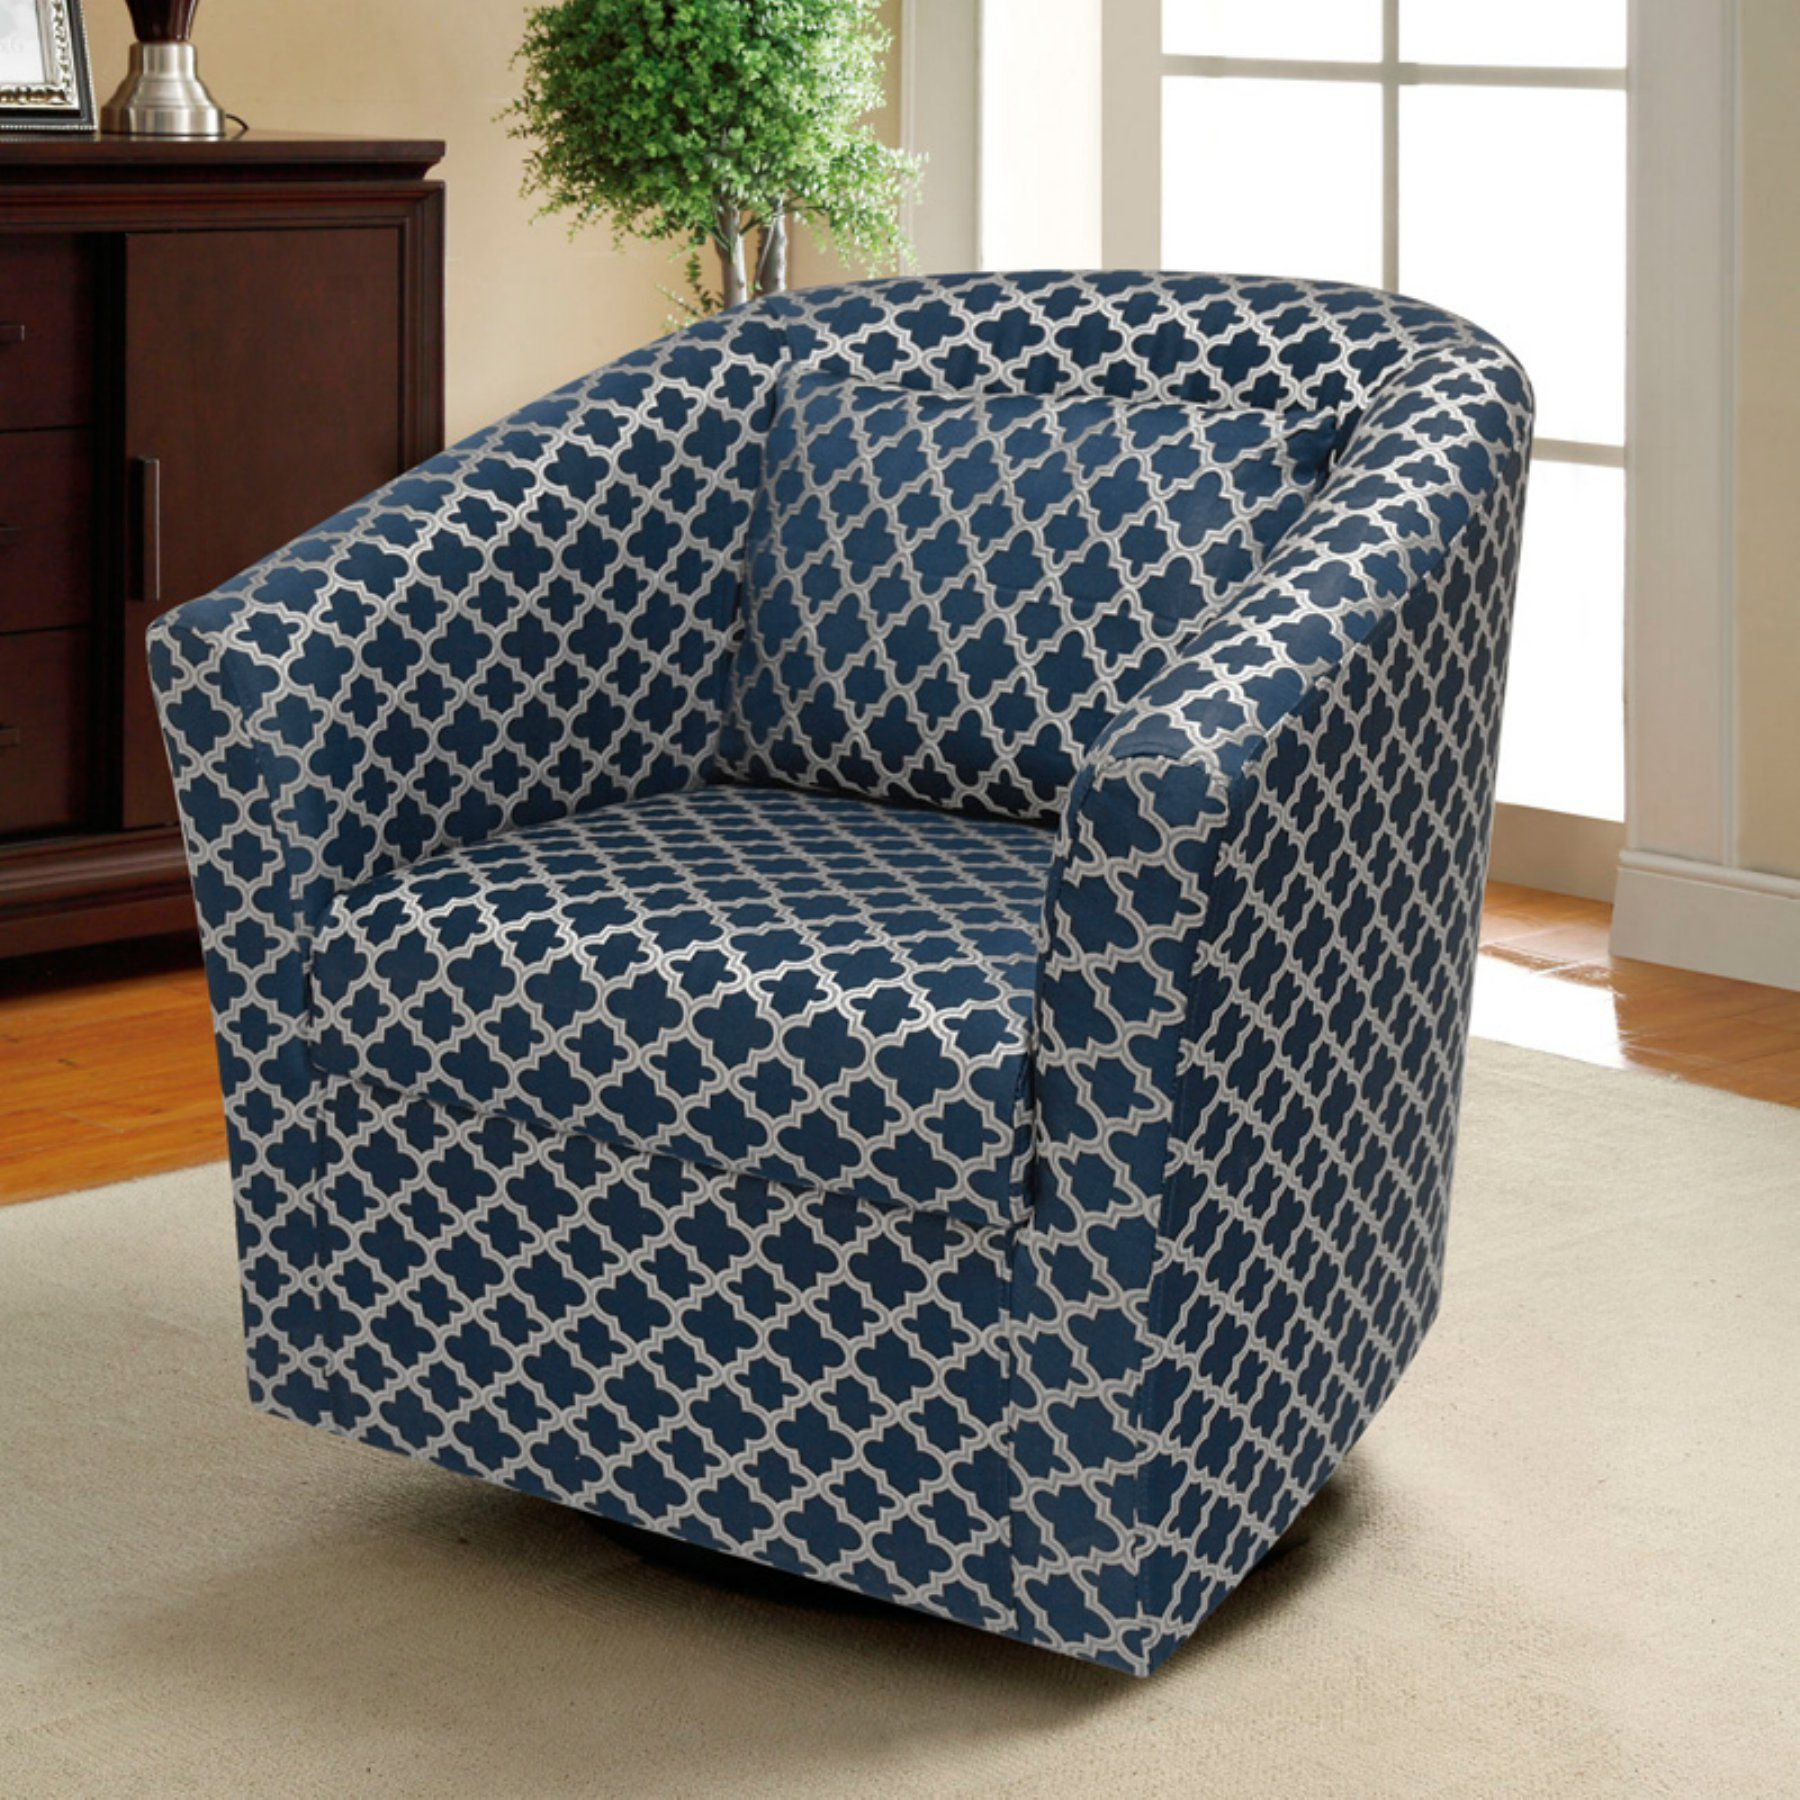 Sensational Relax A Lounger Tacoma Swivel Chair Lch Trsu2451 Evergreenethics Interior Chair Design Evergreenethicsorg